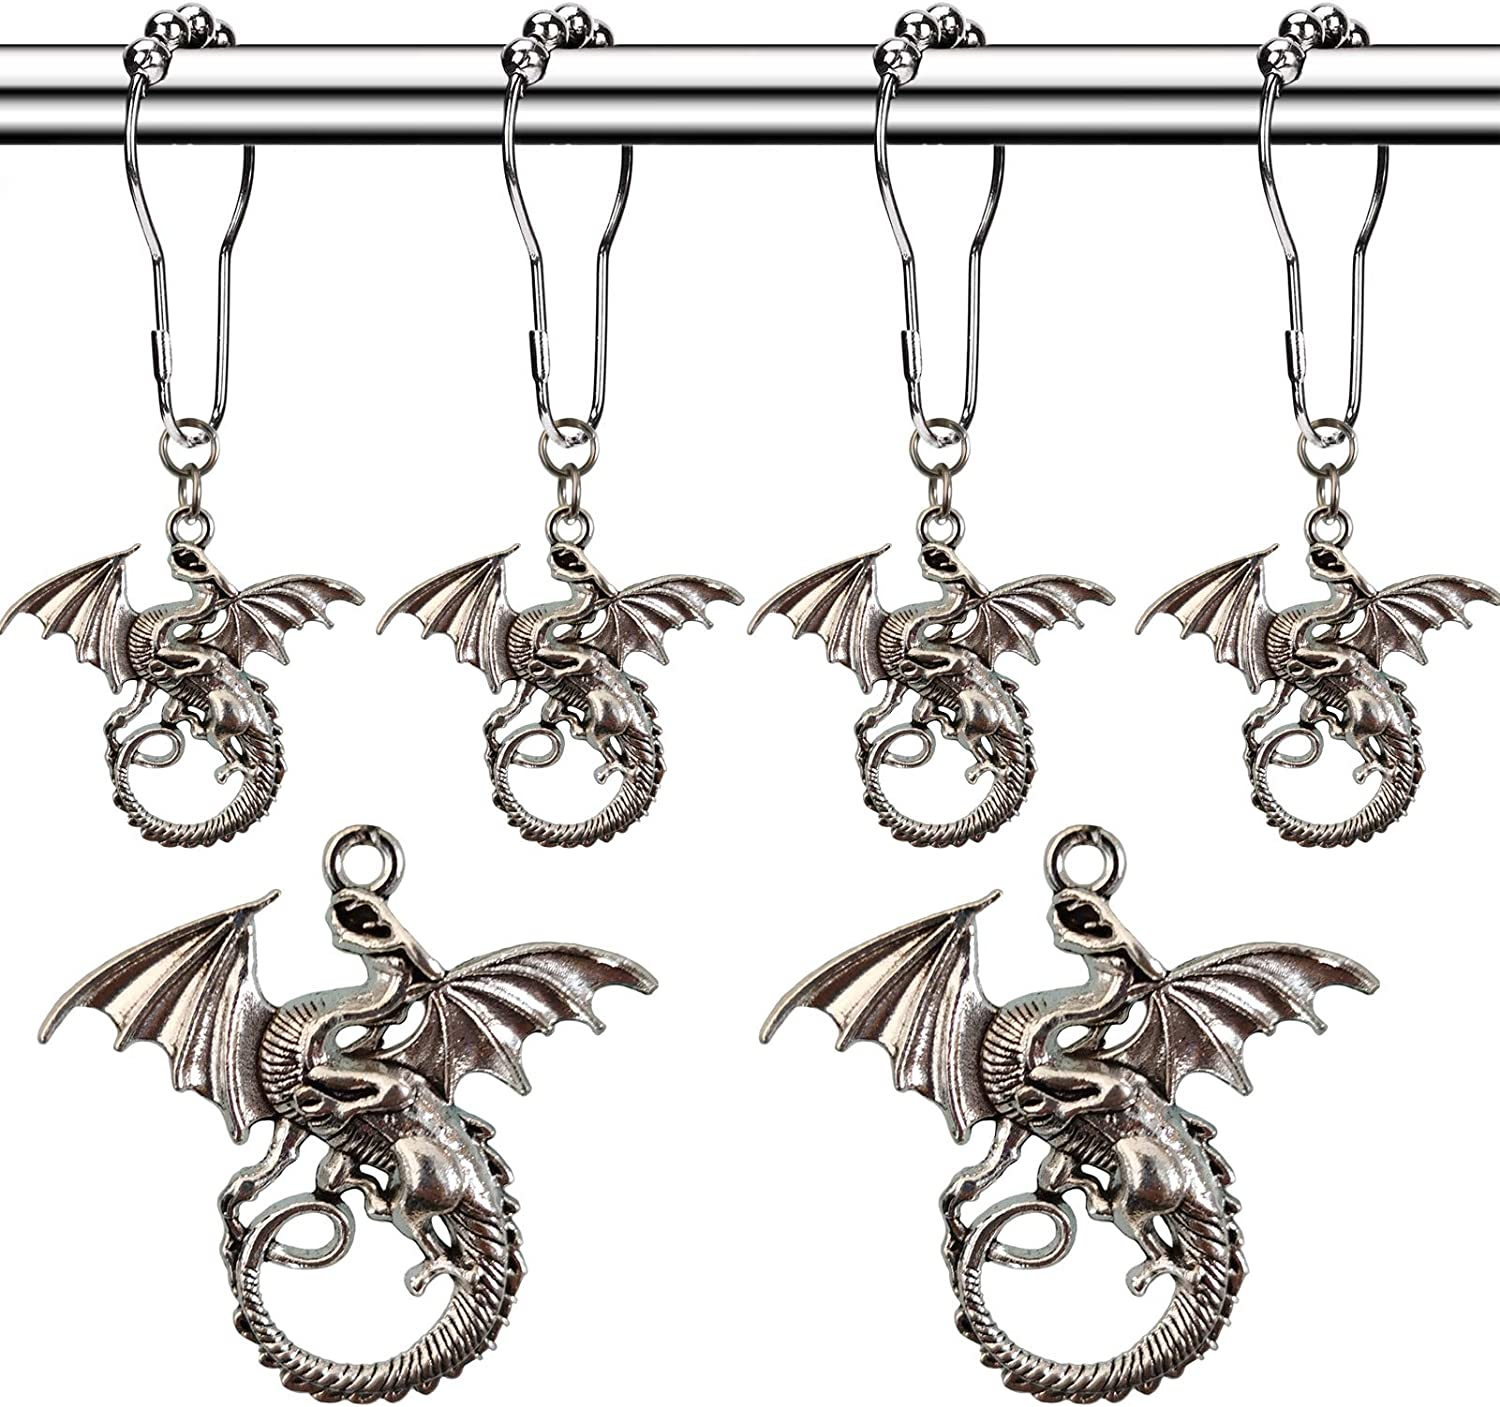 Molika Dragon Shower Curtain Hooks Rings - Antique Silver Metal Curtain Hangers Decorative Bath Room Accessories Set - Forest, Country, Village Theme Kids Baby Room Bathroom Decor (Dragon-01)